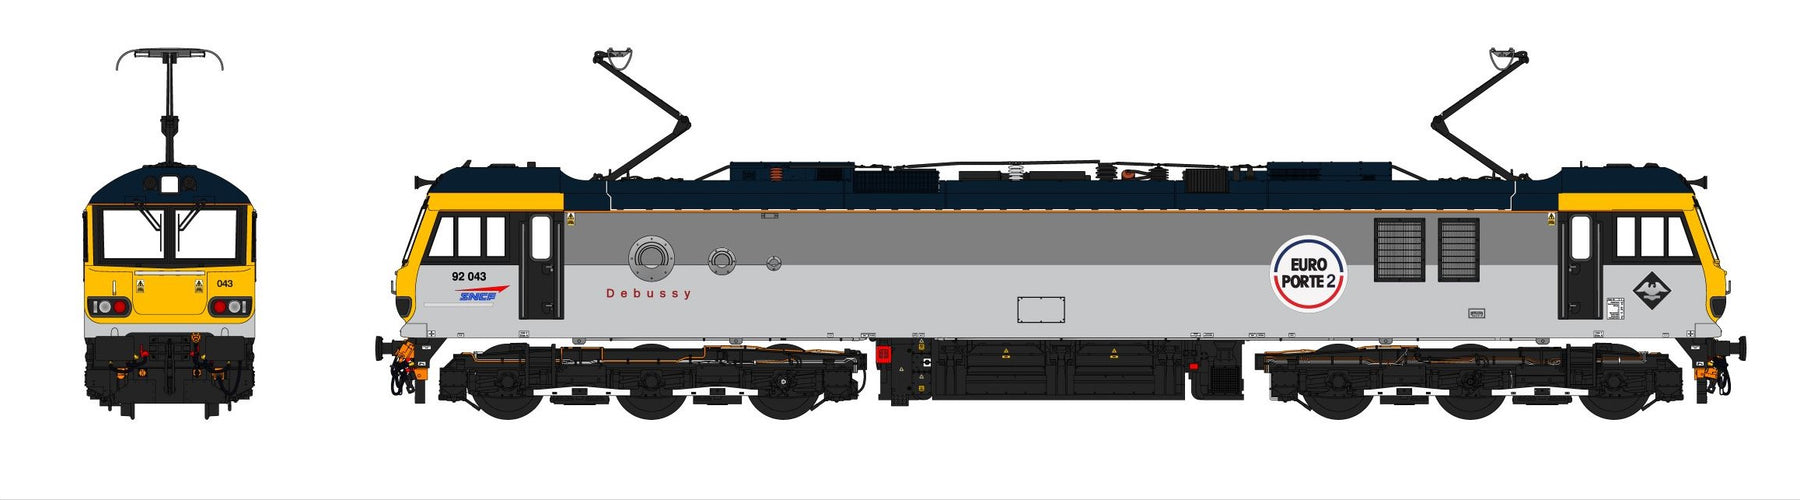 Class 92 Update - We need to talk about those pans..